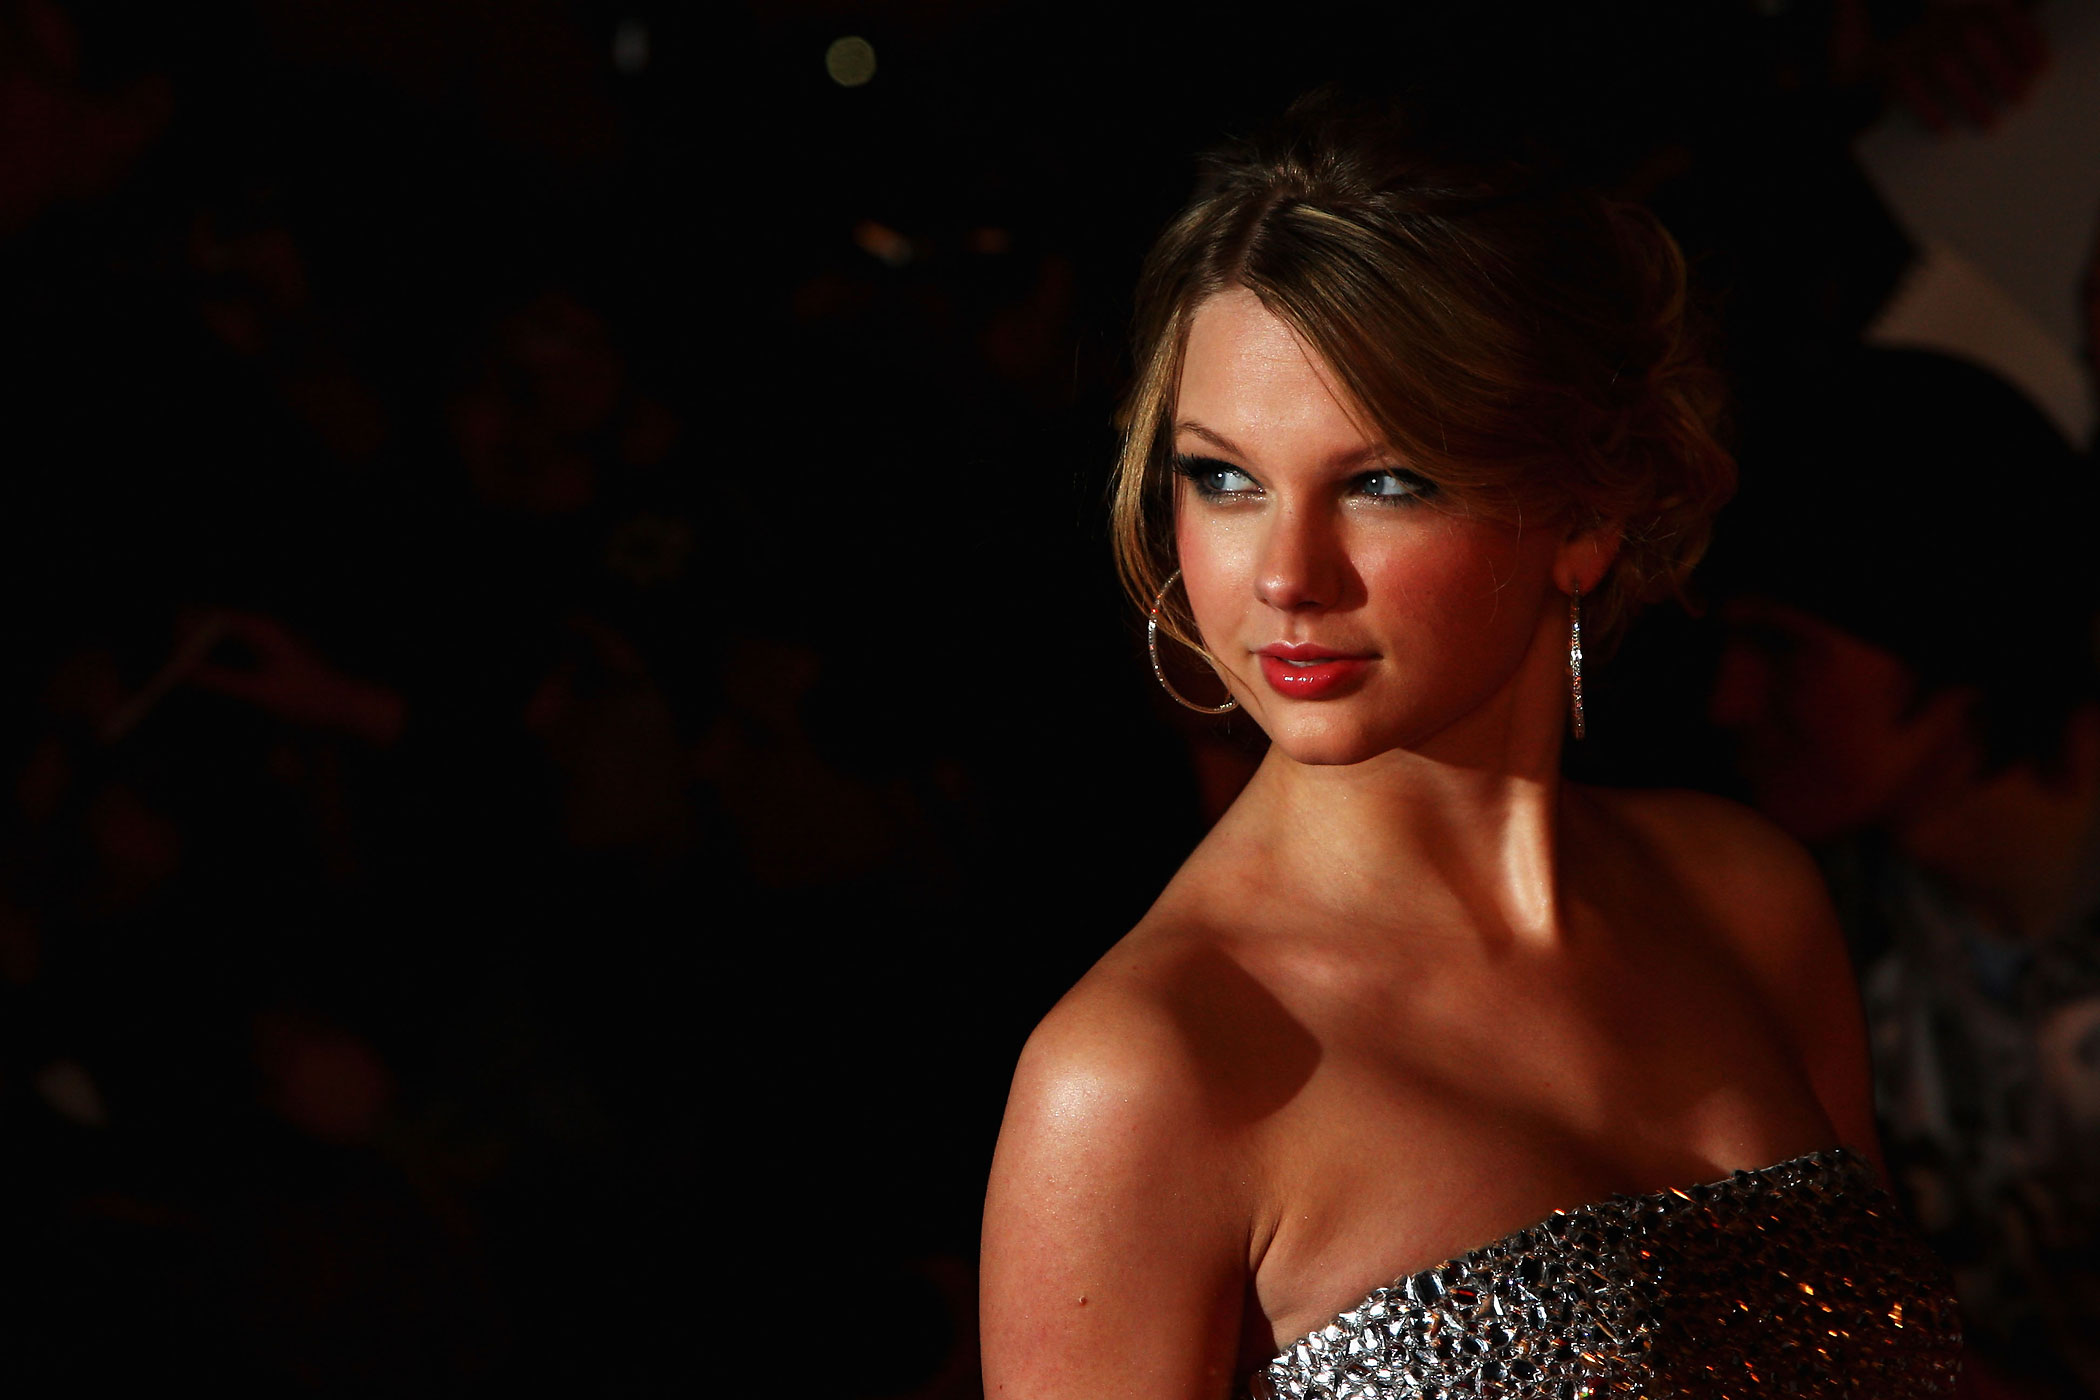 Taylor Swift arrives at the Brit Awards 2009 at Earls Court in London, England.